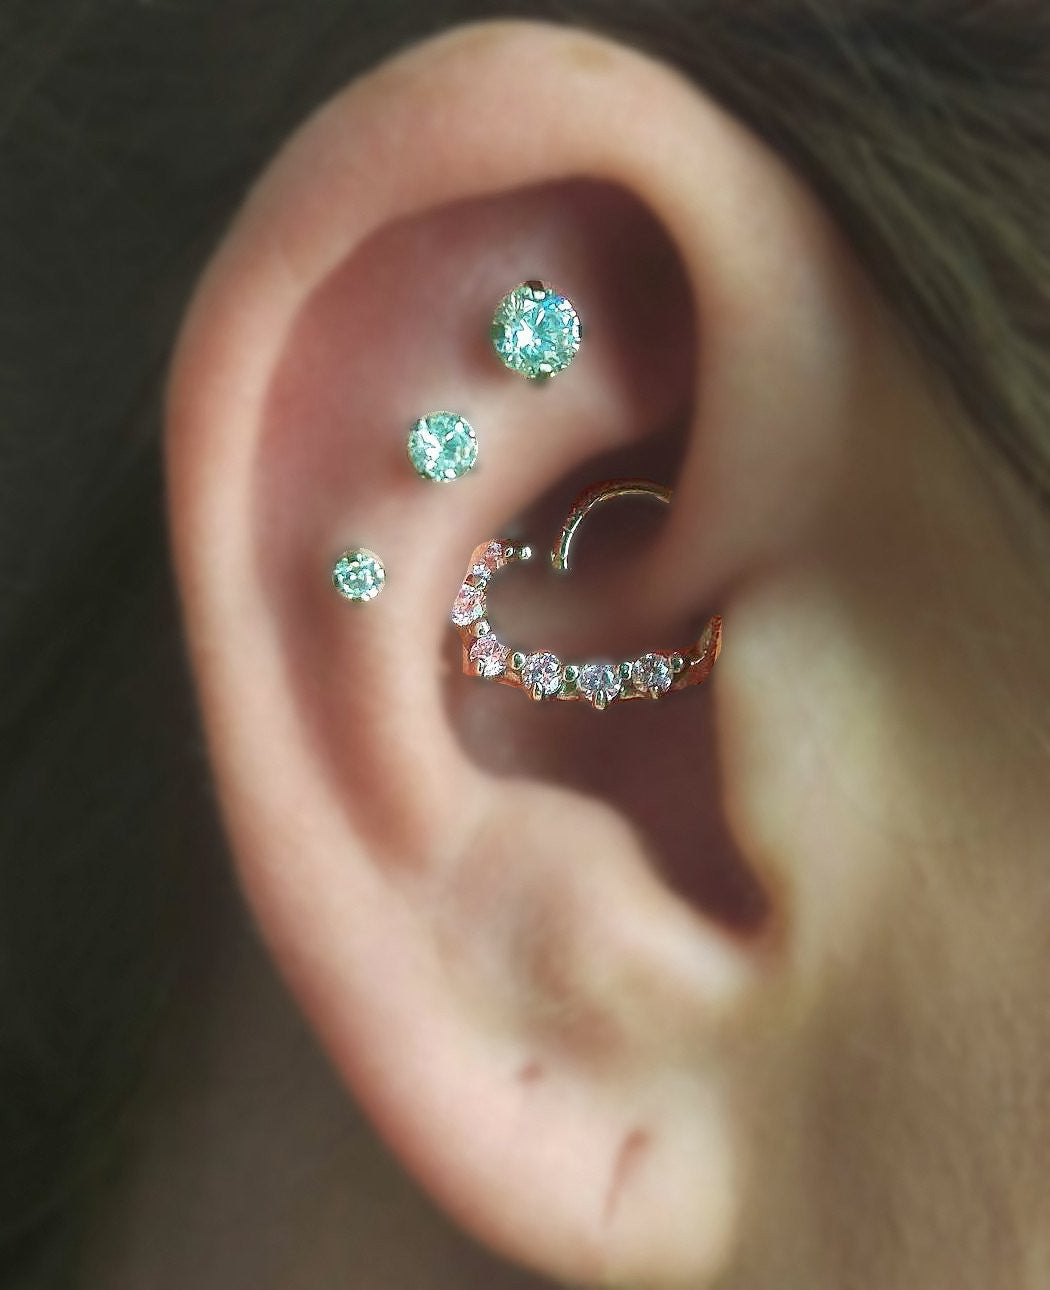 Swarovski Ear Cartilage Tragus Helix Earring Piercing